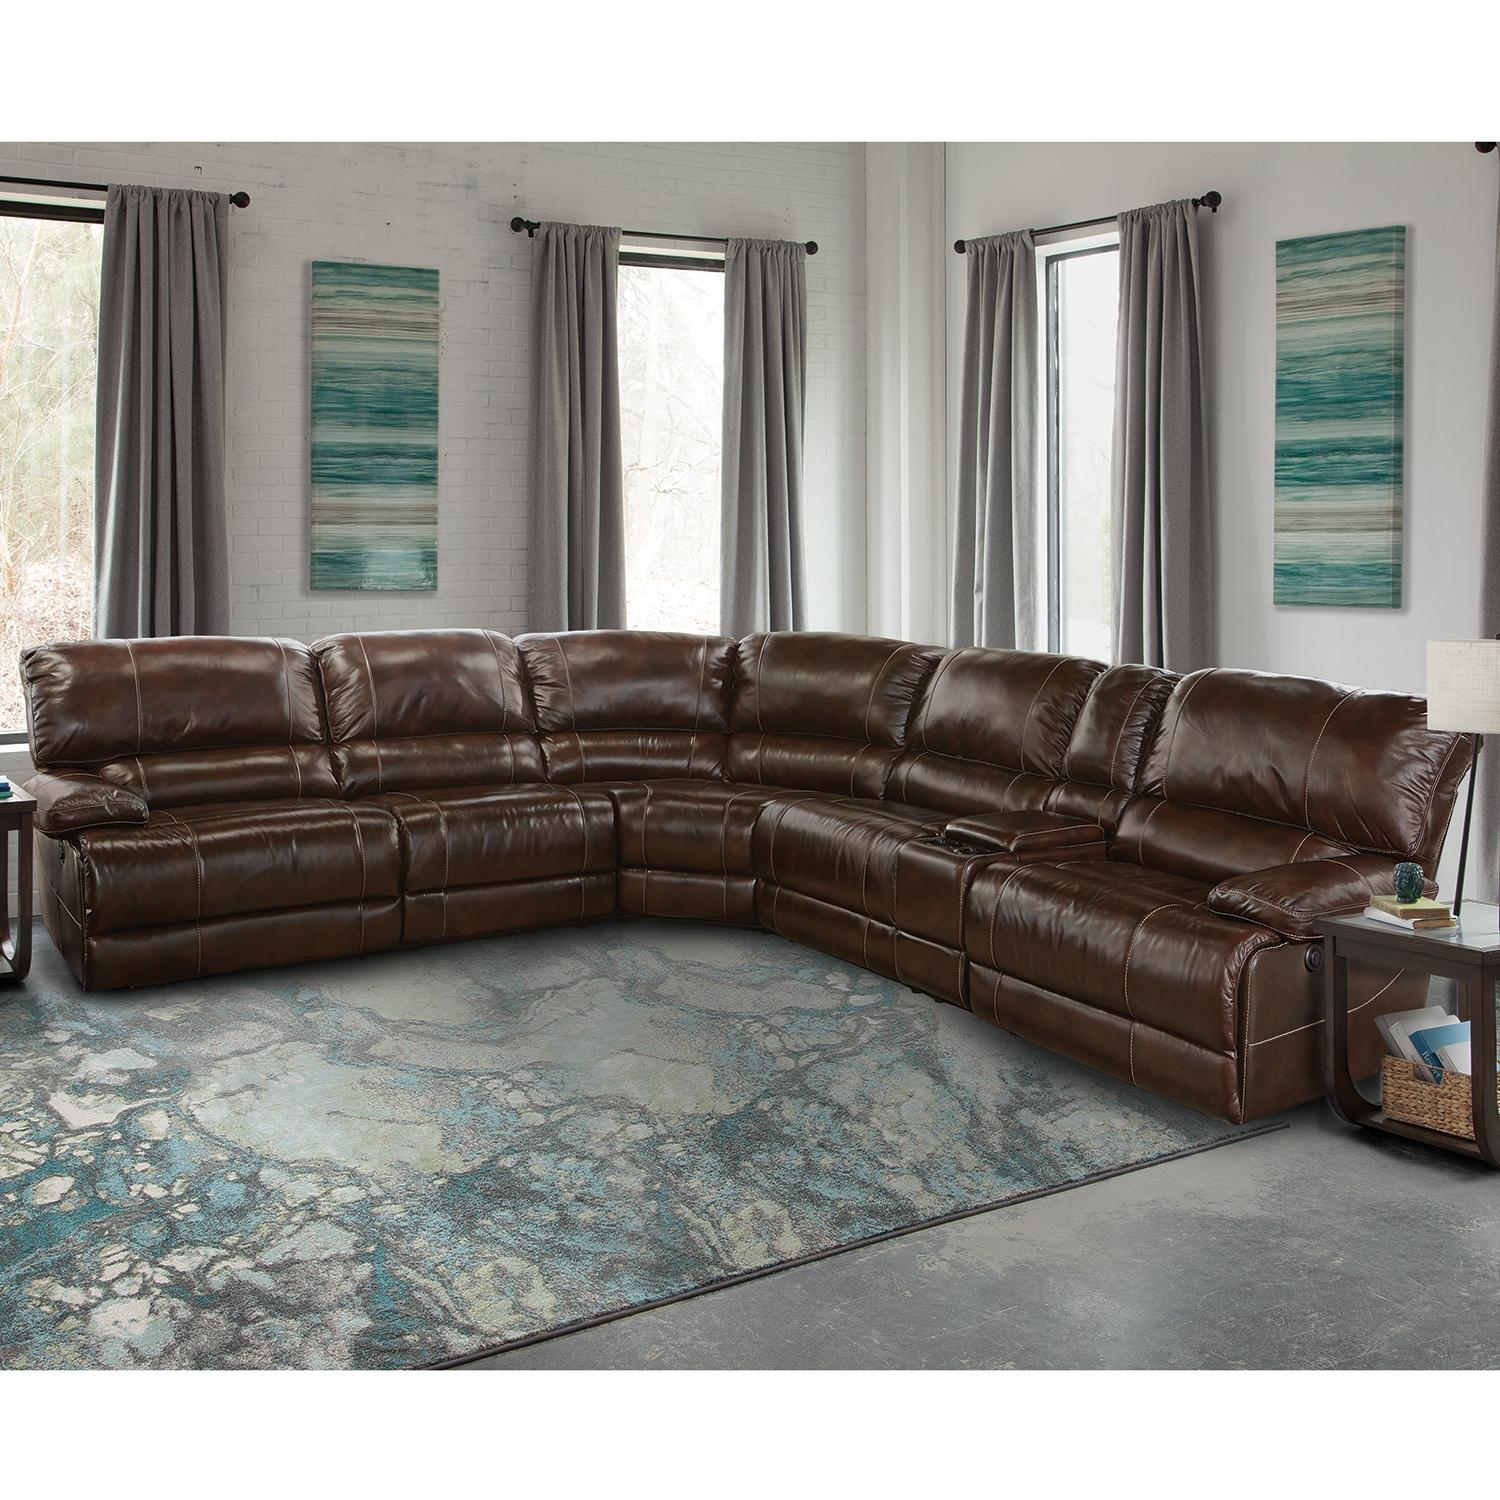 Stunning 6 Piece Leather Sectional Sofa 68 For Your Sectional Pertaining To Leather Sectional Sofas Toronto (Photo 10 of 20)